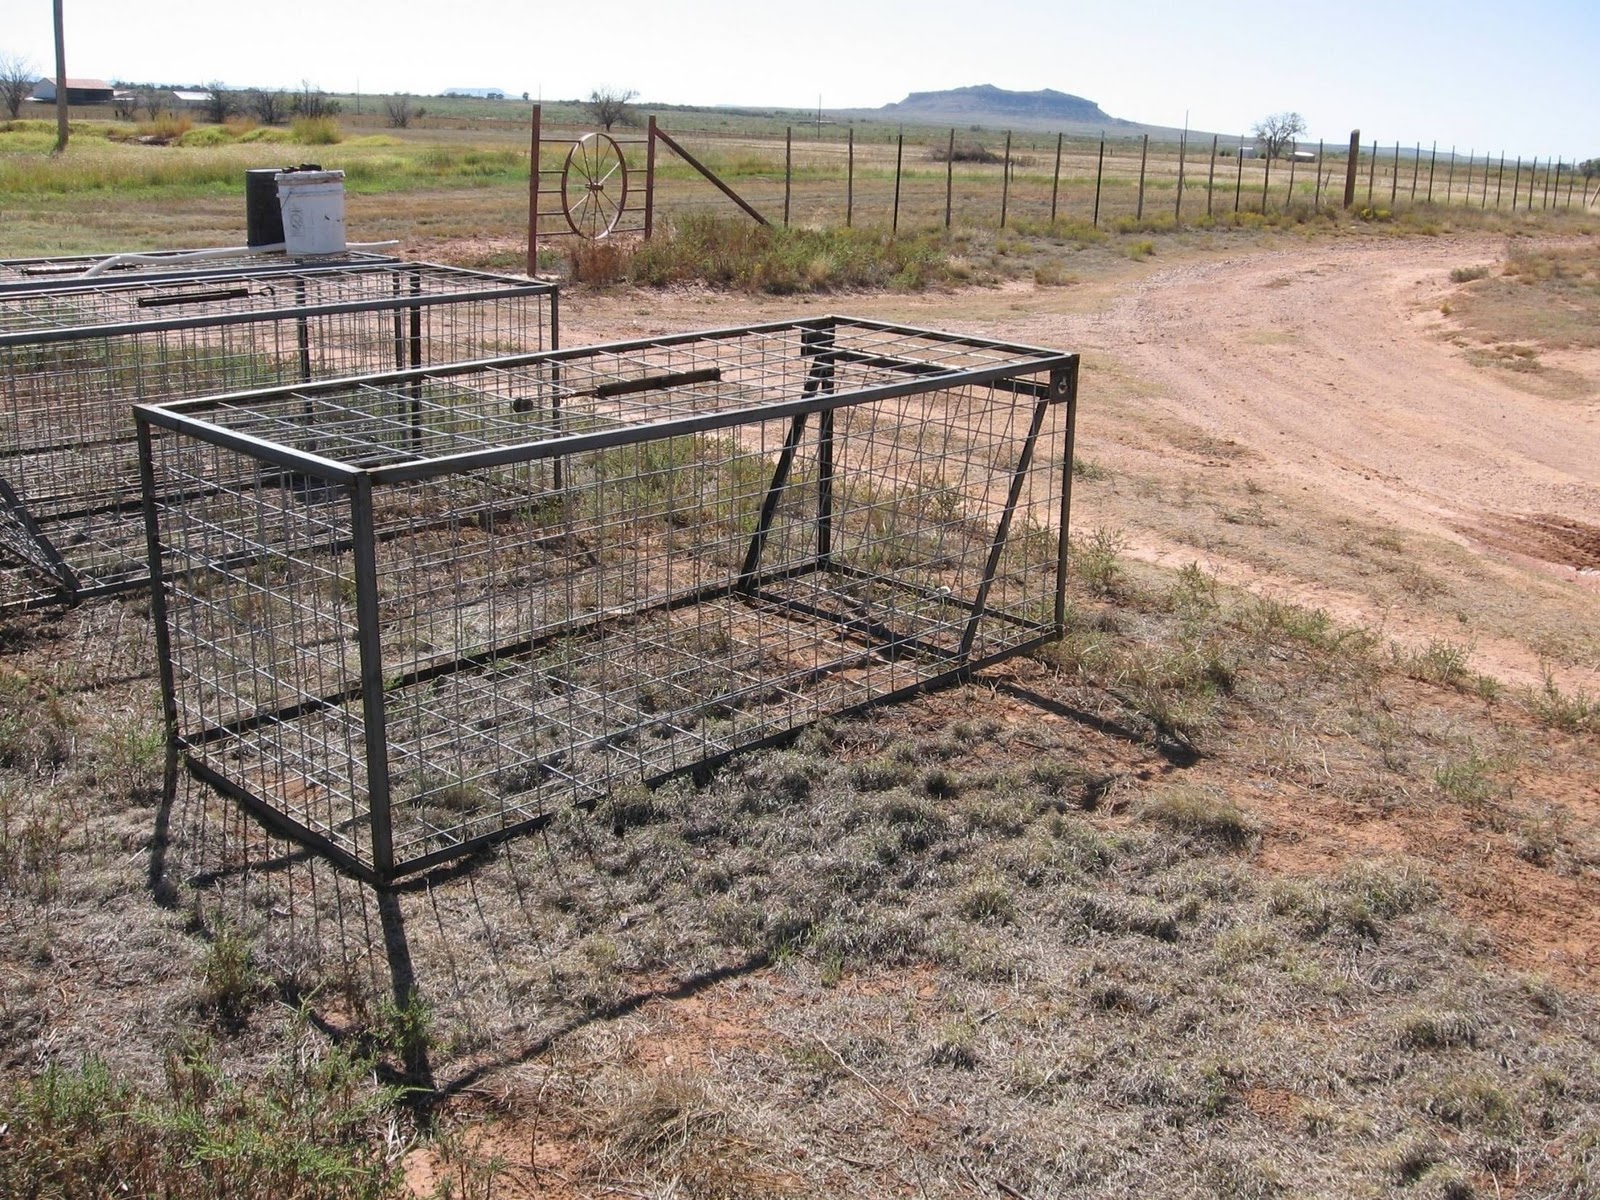 Build Deer Trap http://karlfmoffatt.blogspot.com/2012/01/wild-hogs-invade-new-mexico-threaten-to.html